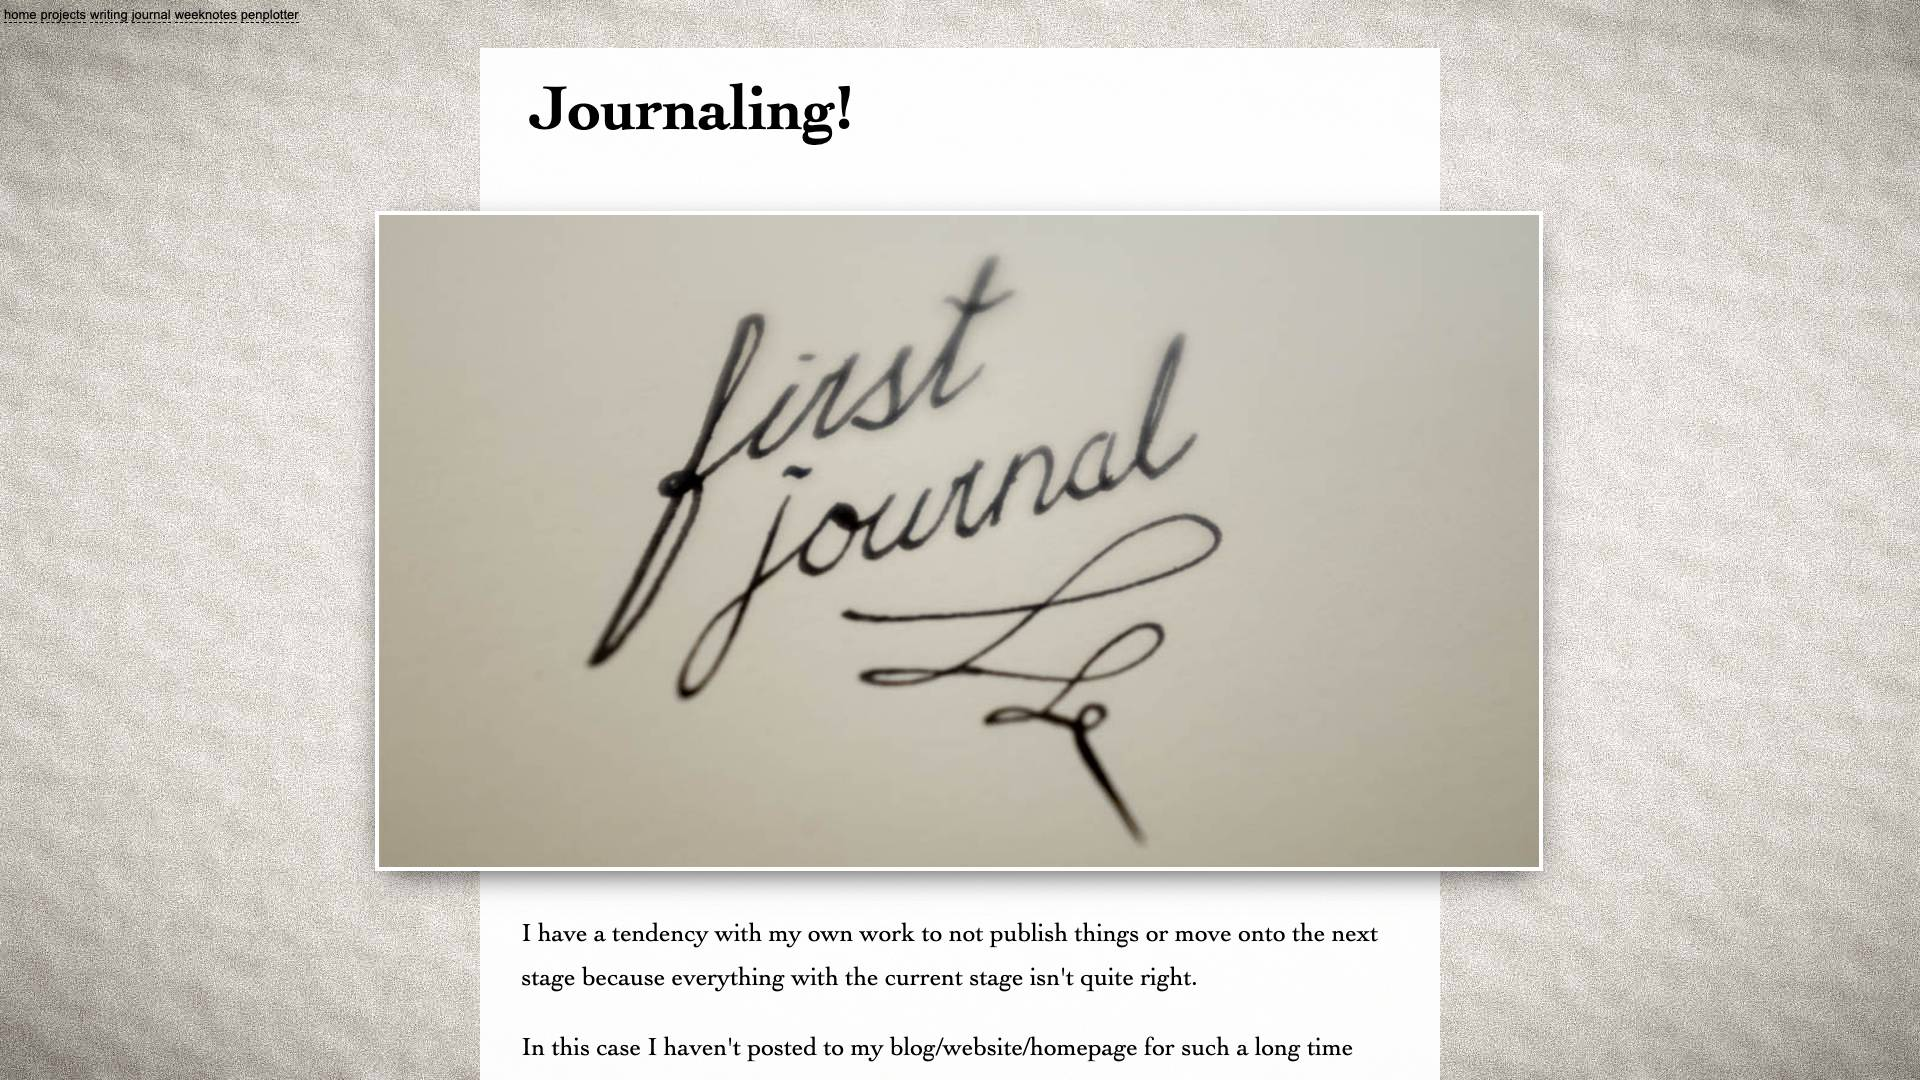 My first journal entry